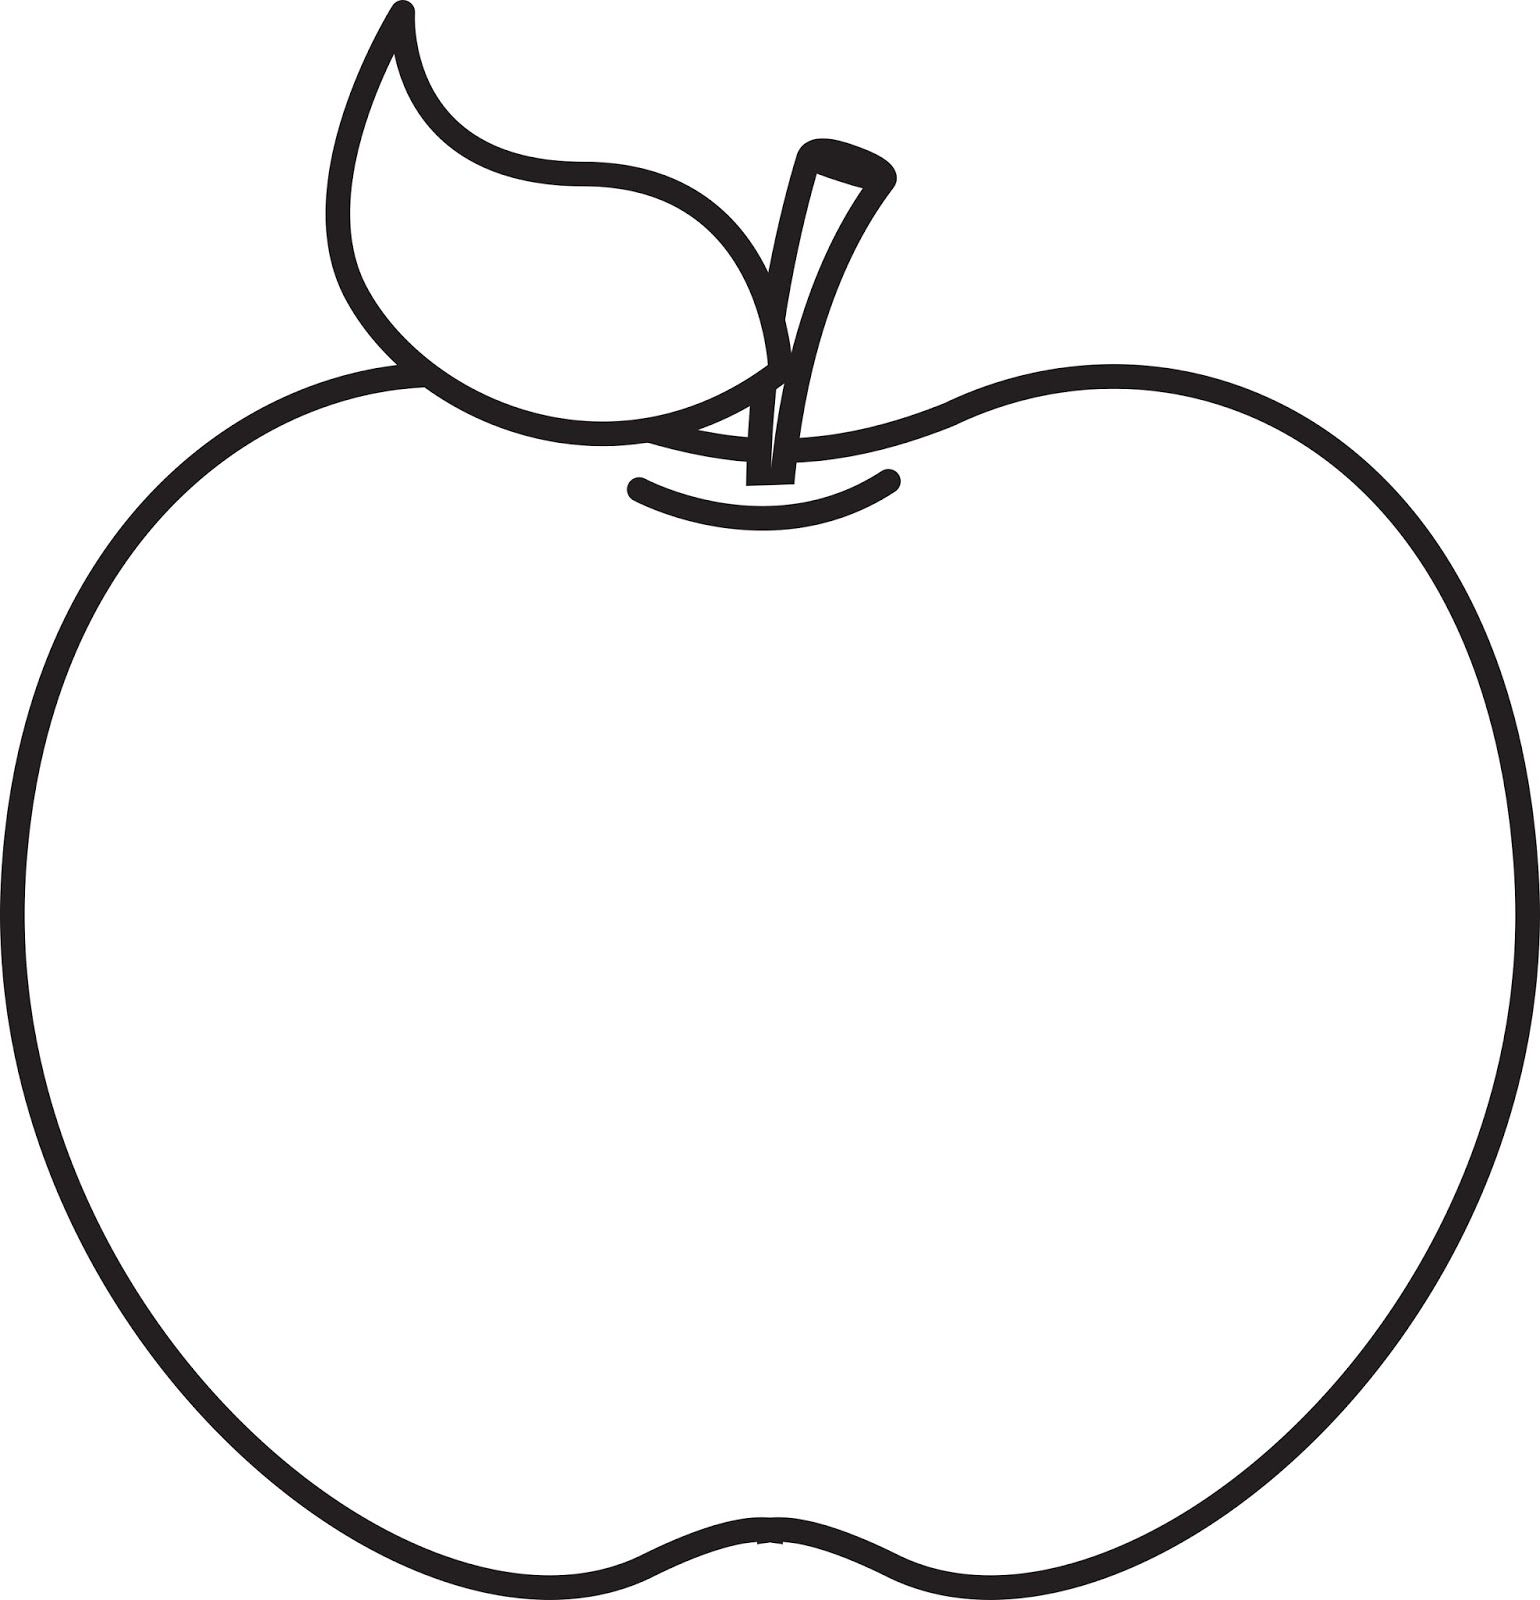 Heart shaped apple clipart black and white